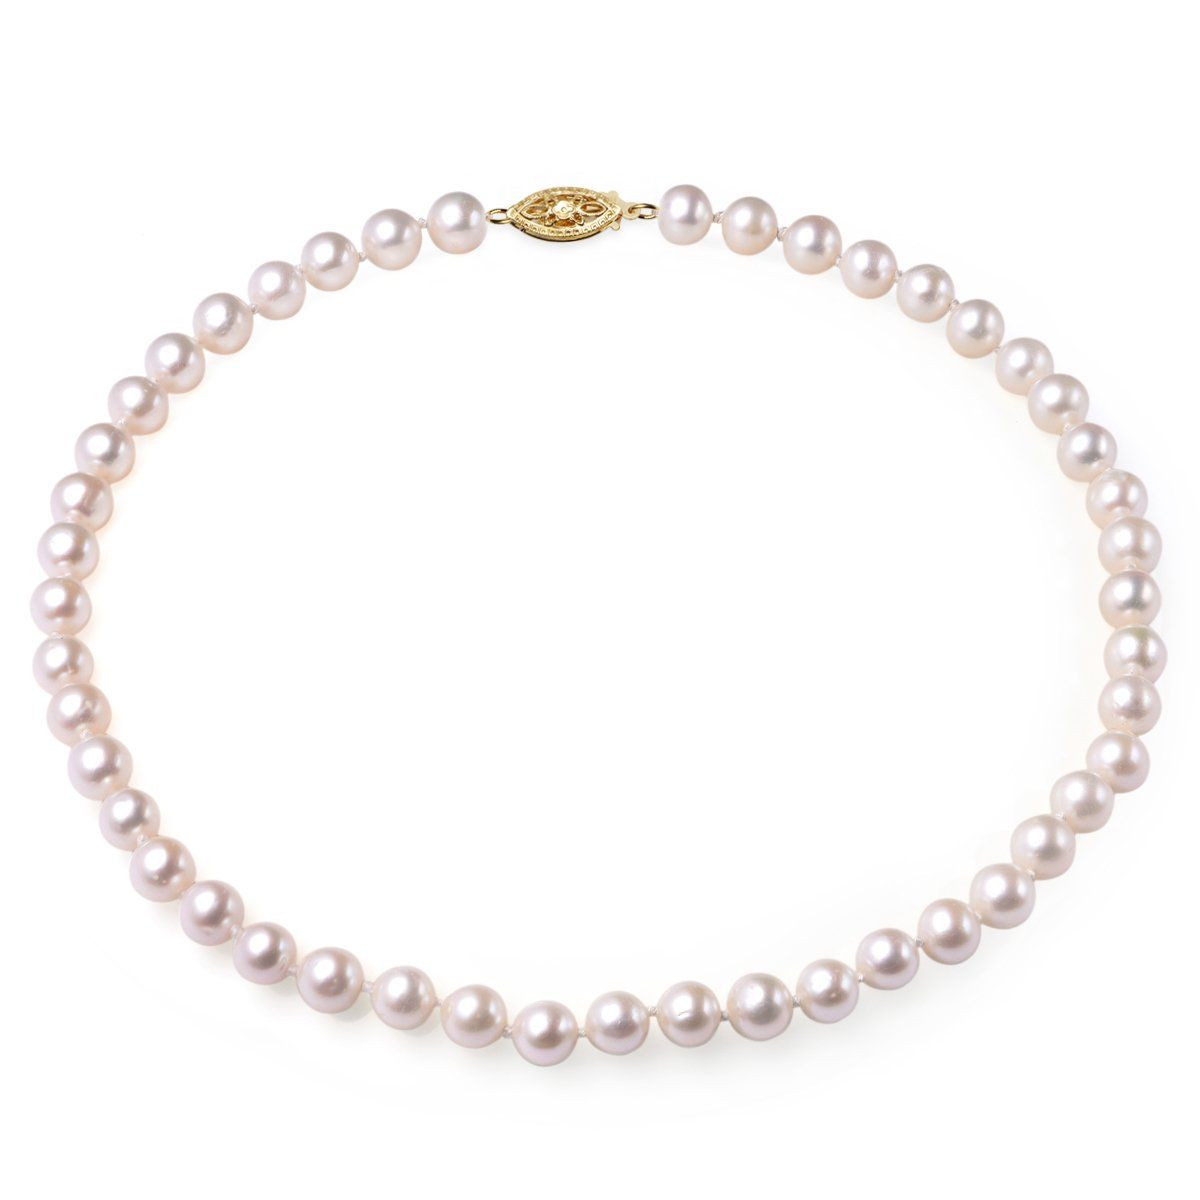 white, 7-8mm, aa, cultured freshwater pearl strand necklace with 14k solid yellow gold fish hook